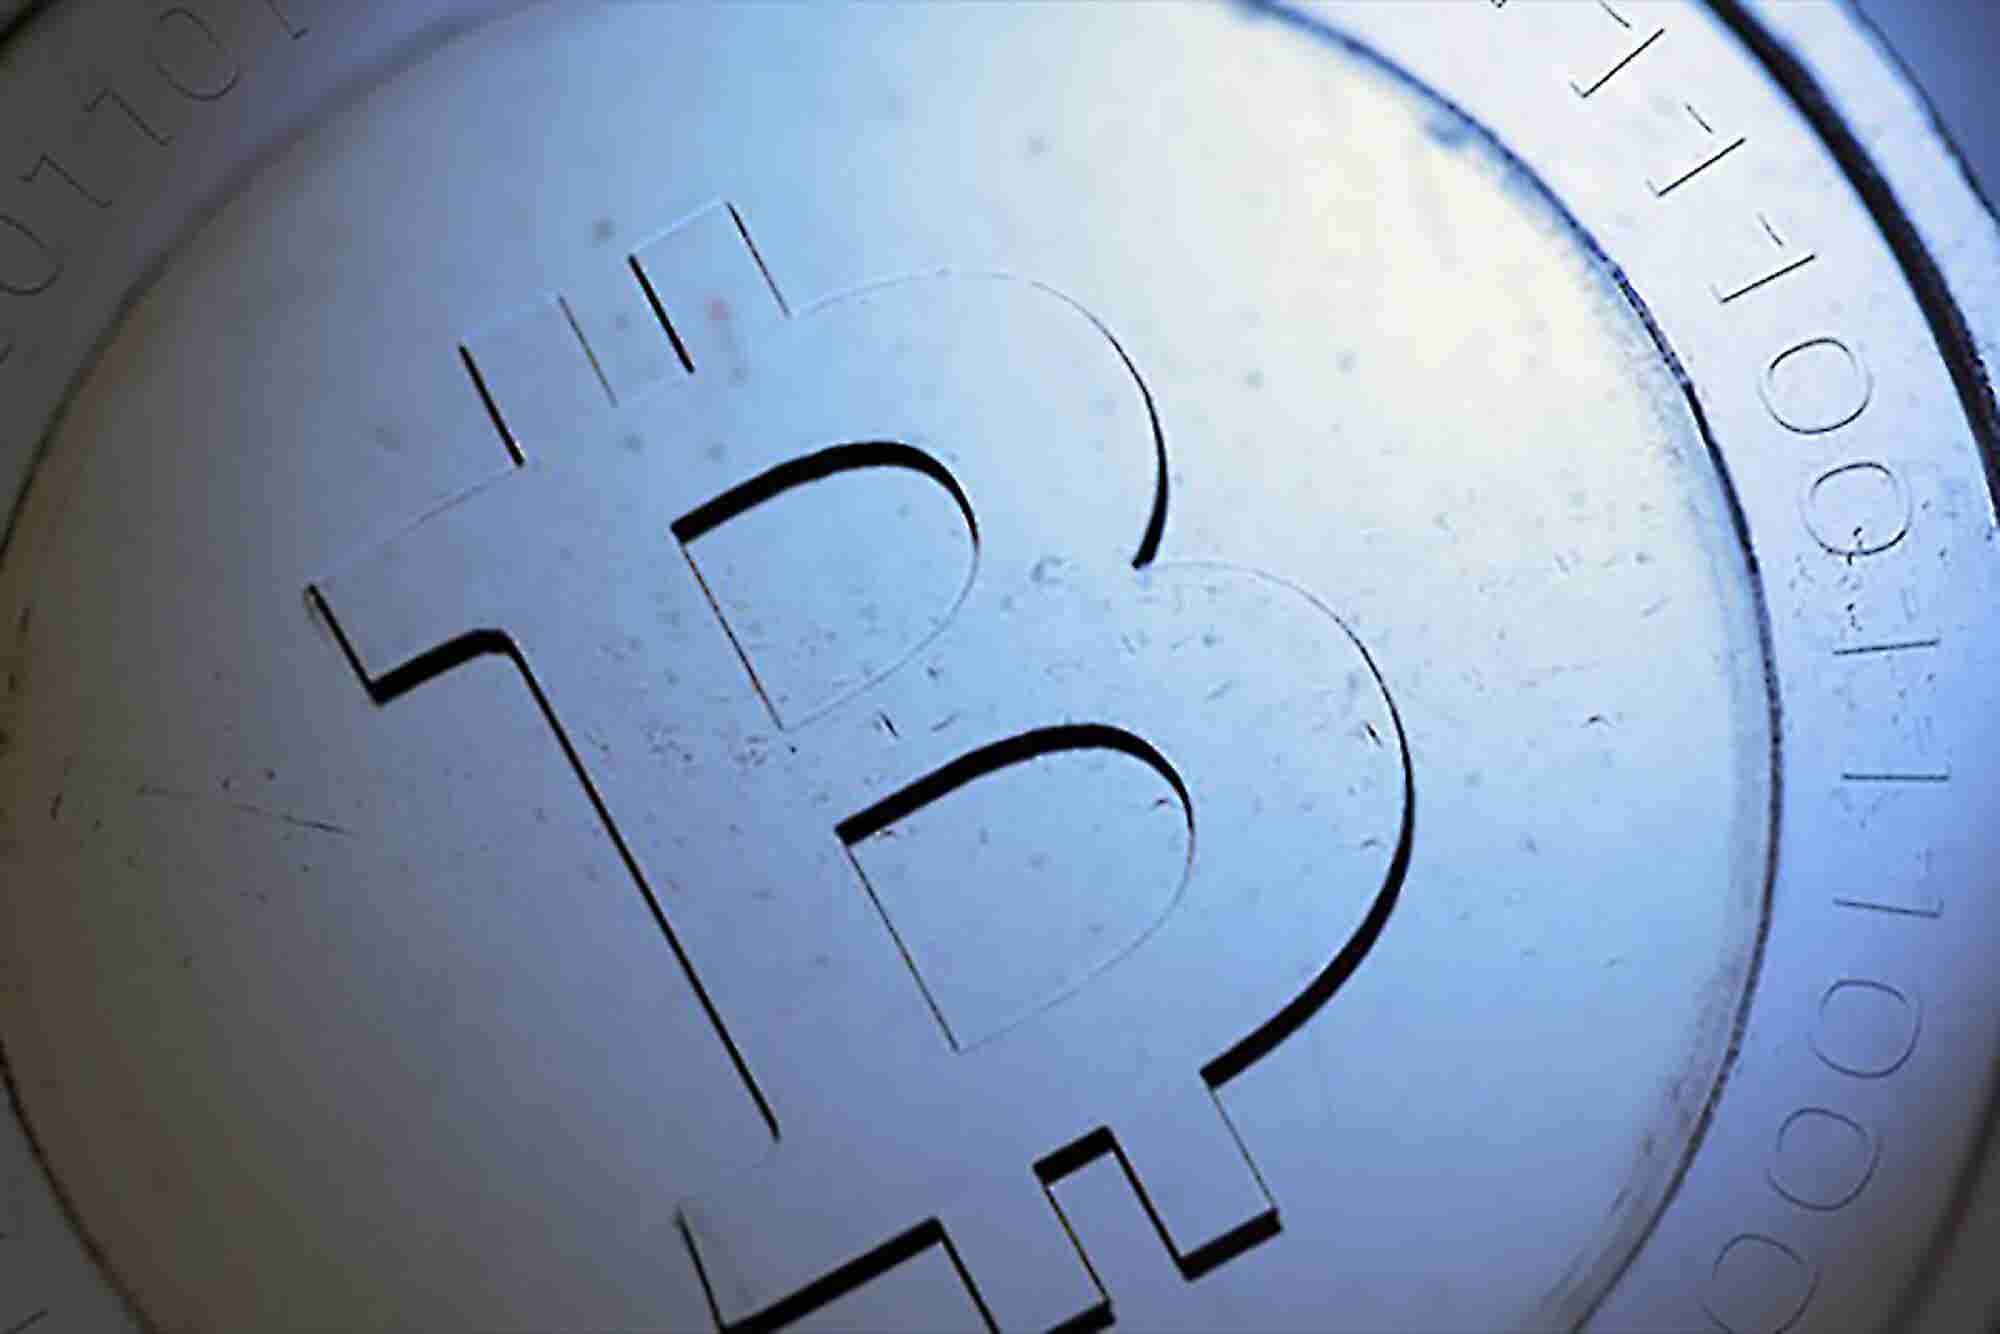 Bitcoin Startups Fear No Ban in India, Say Technology Will Make Inroads